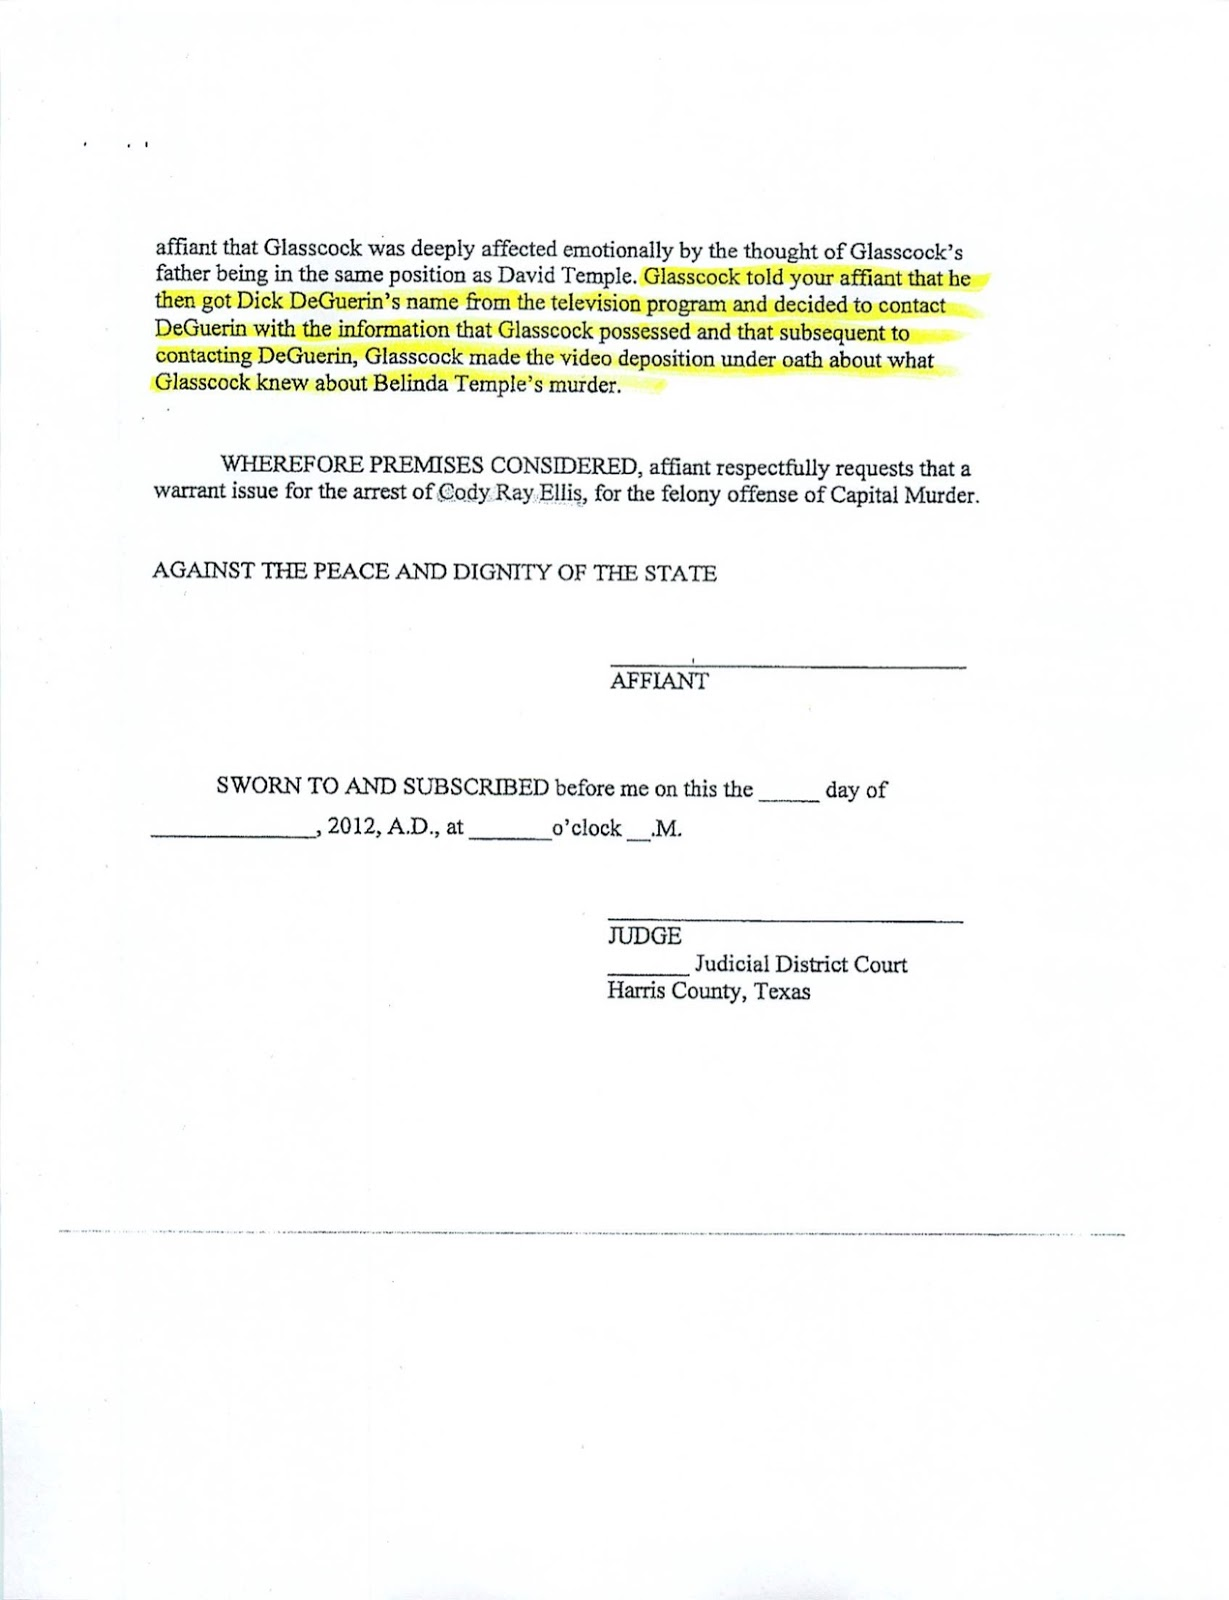 174th district court case 1430835 - So To Summarize Glasscock An Ex Criminal Per The Warrant Didn T Know About The Murder For Twelve Years Sees A Tv Show Remembers An Obscure